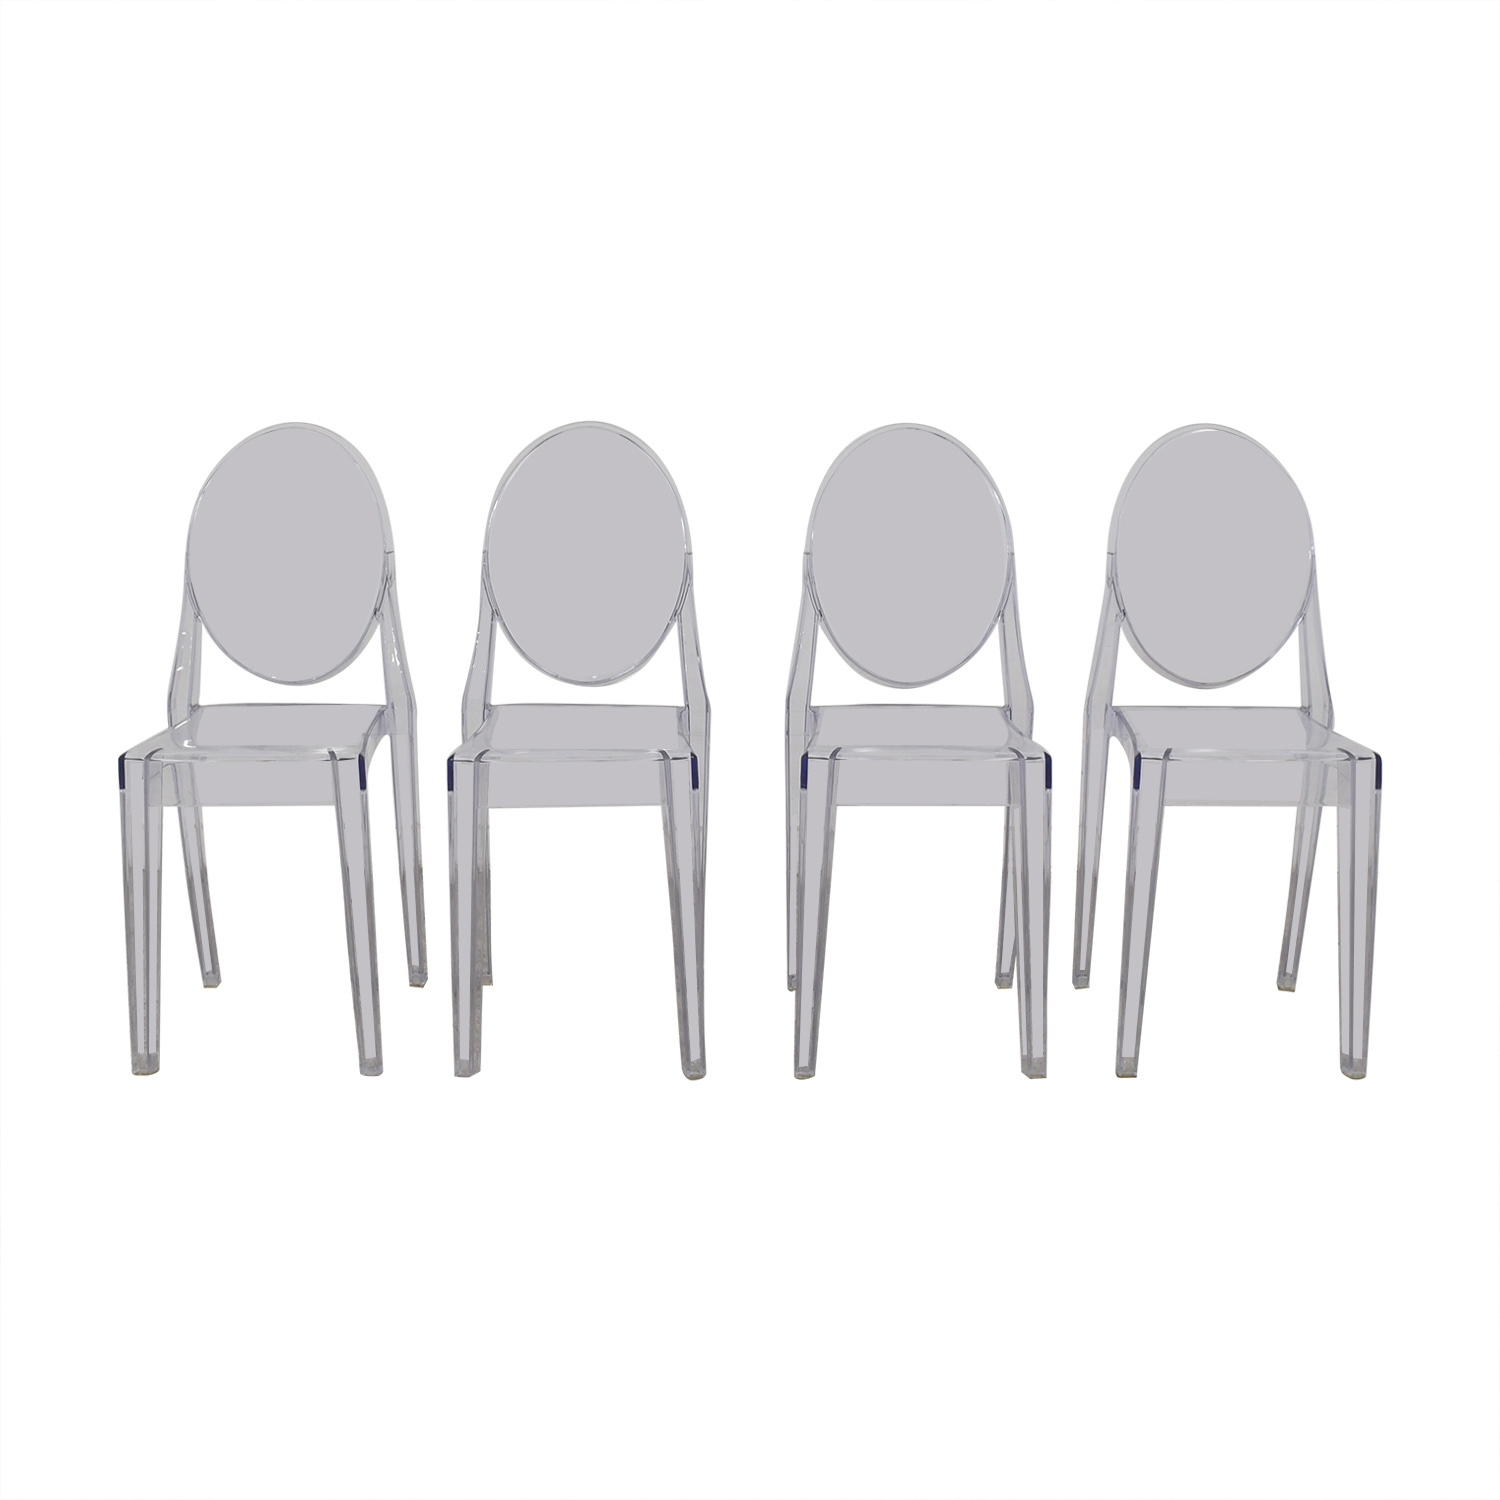 Rove Concepts Rove Concepts Victoria Ghost Side Chairs nj